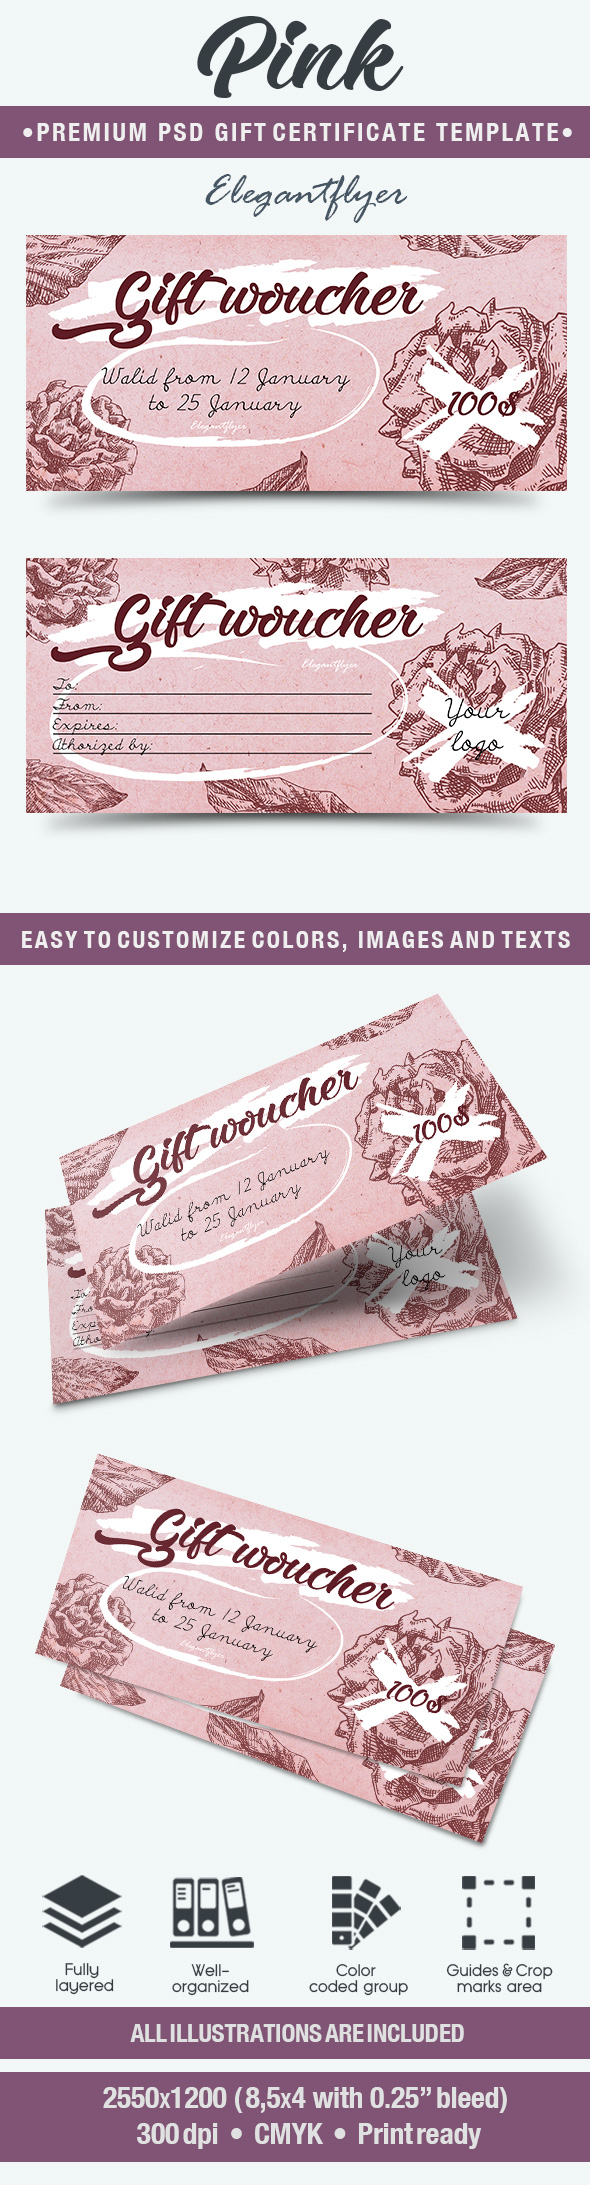 Pink PSD Gift Certificate Template